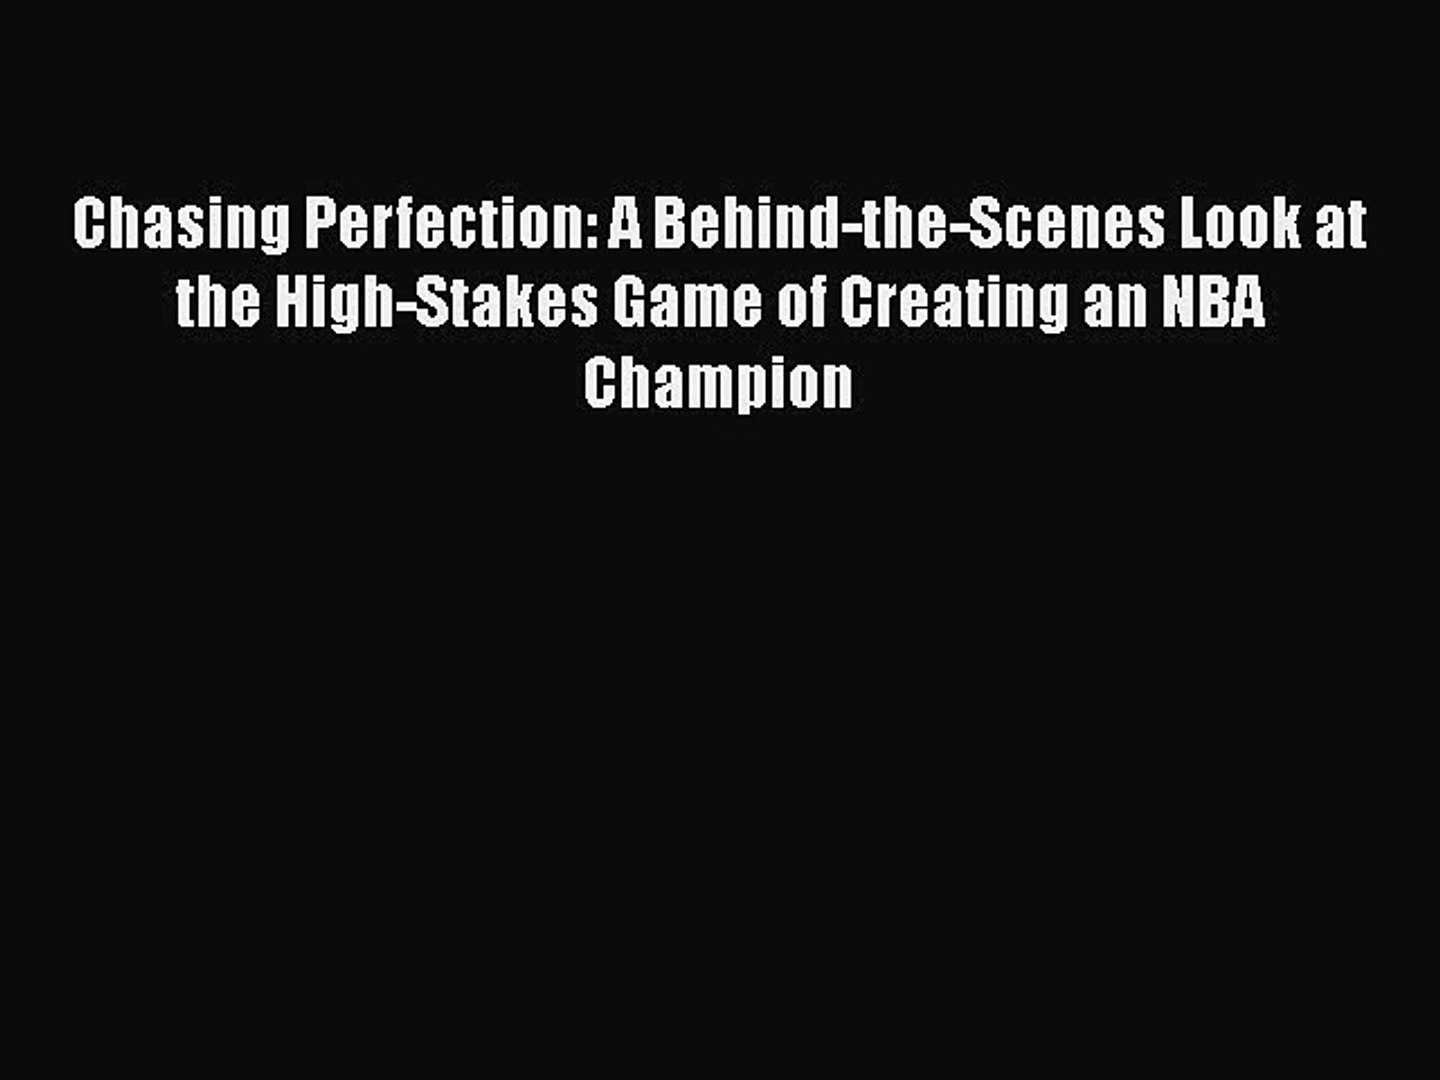 [PDF] Chasing Perfection: A Behind-the-Scenes Look at the High-Stakes Game of Creating an NBA